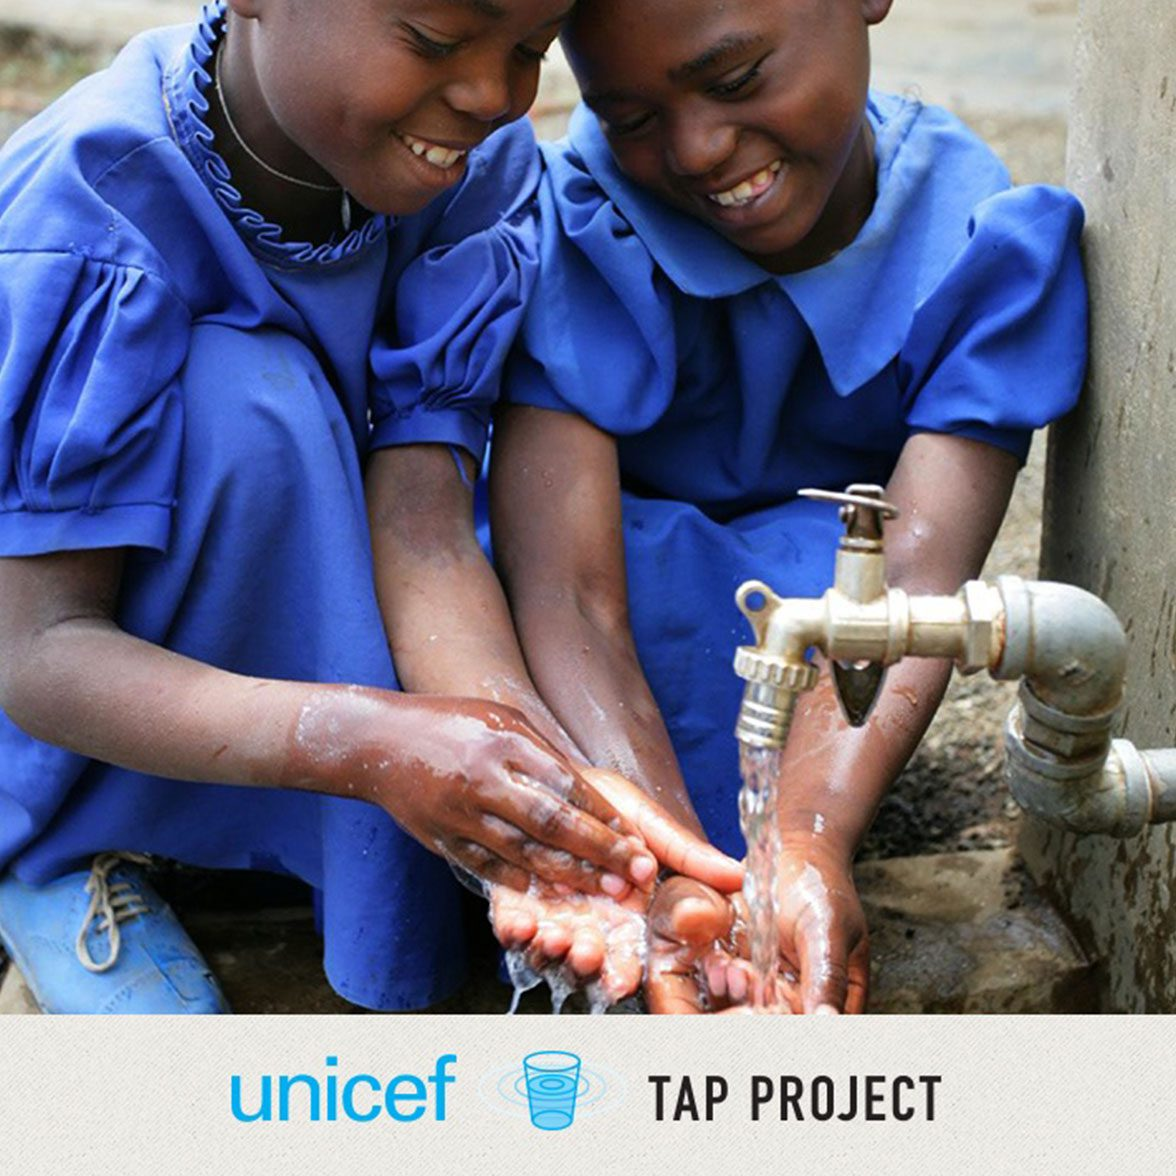 Two young girls washing their hands